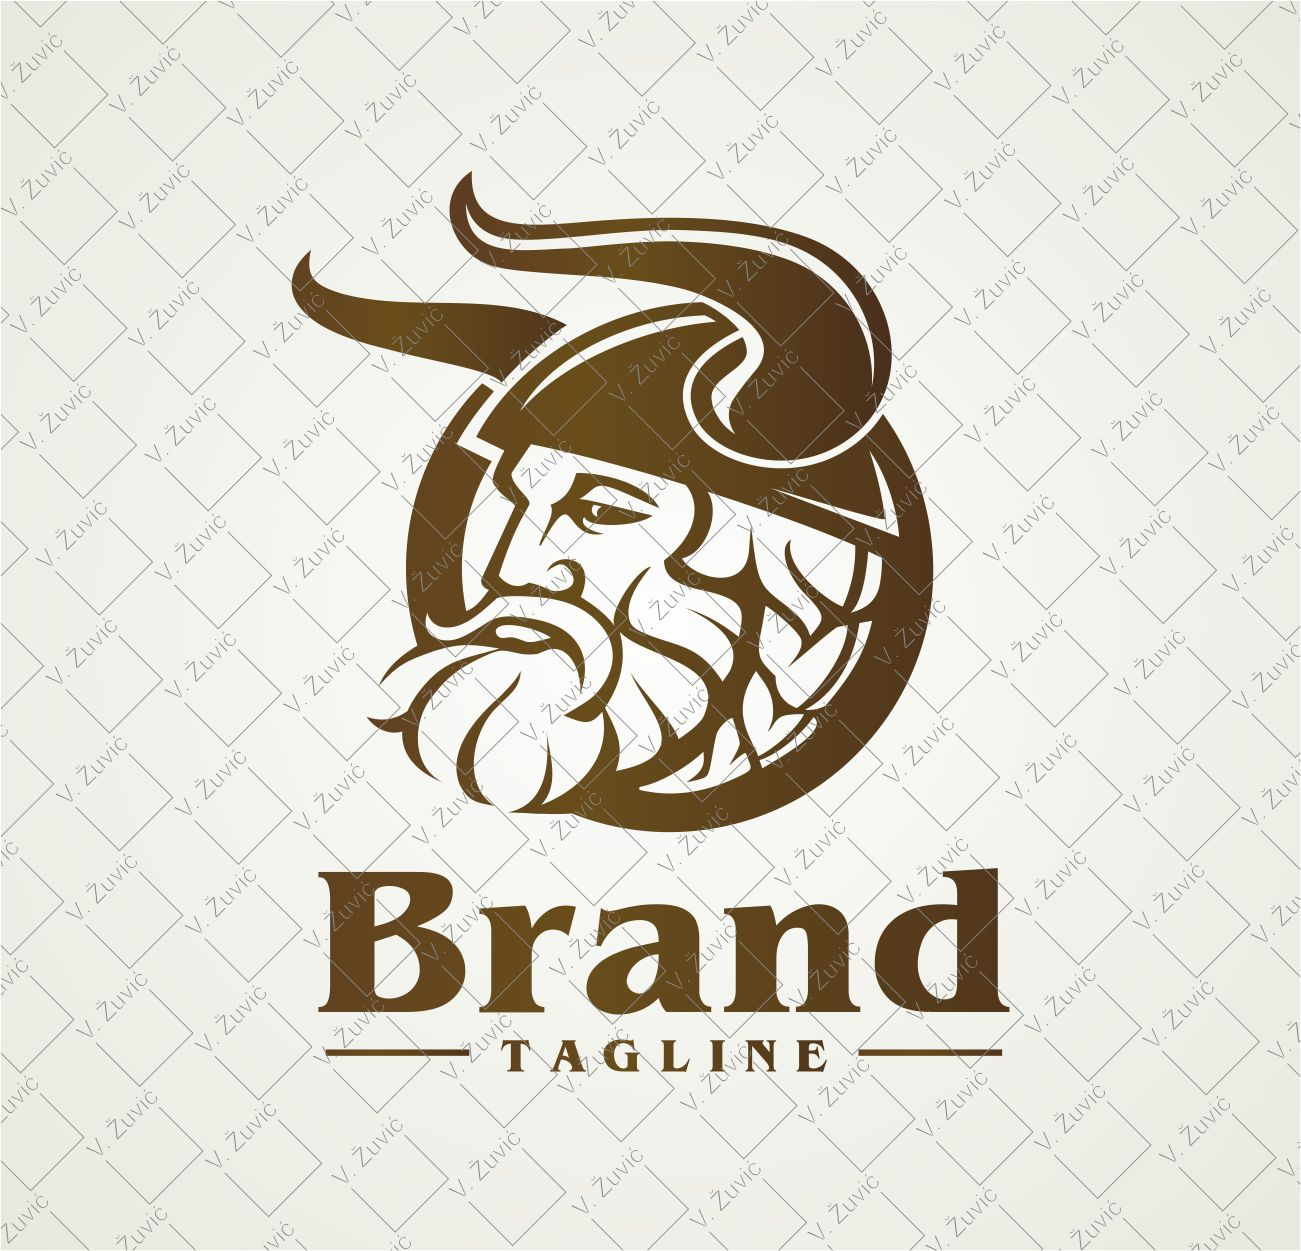 Logo is available for sale. Viking logo design.   Logotip je dostupan za prodaju. Dizajn logotipa - viking.